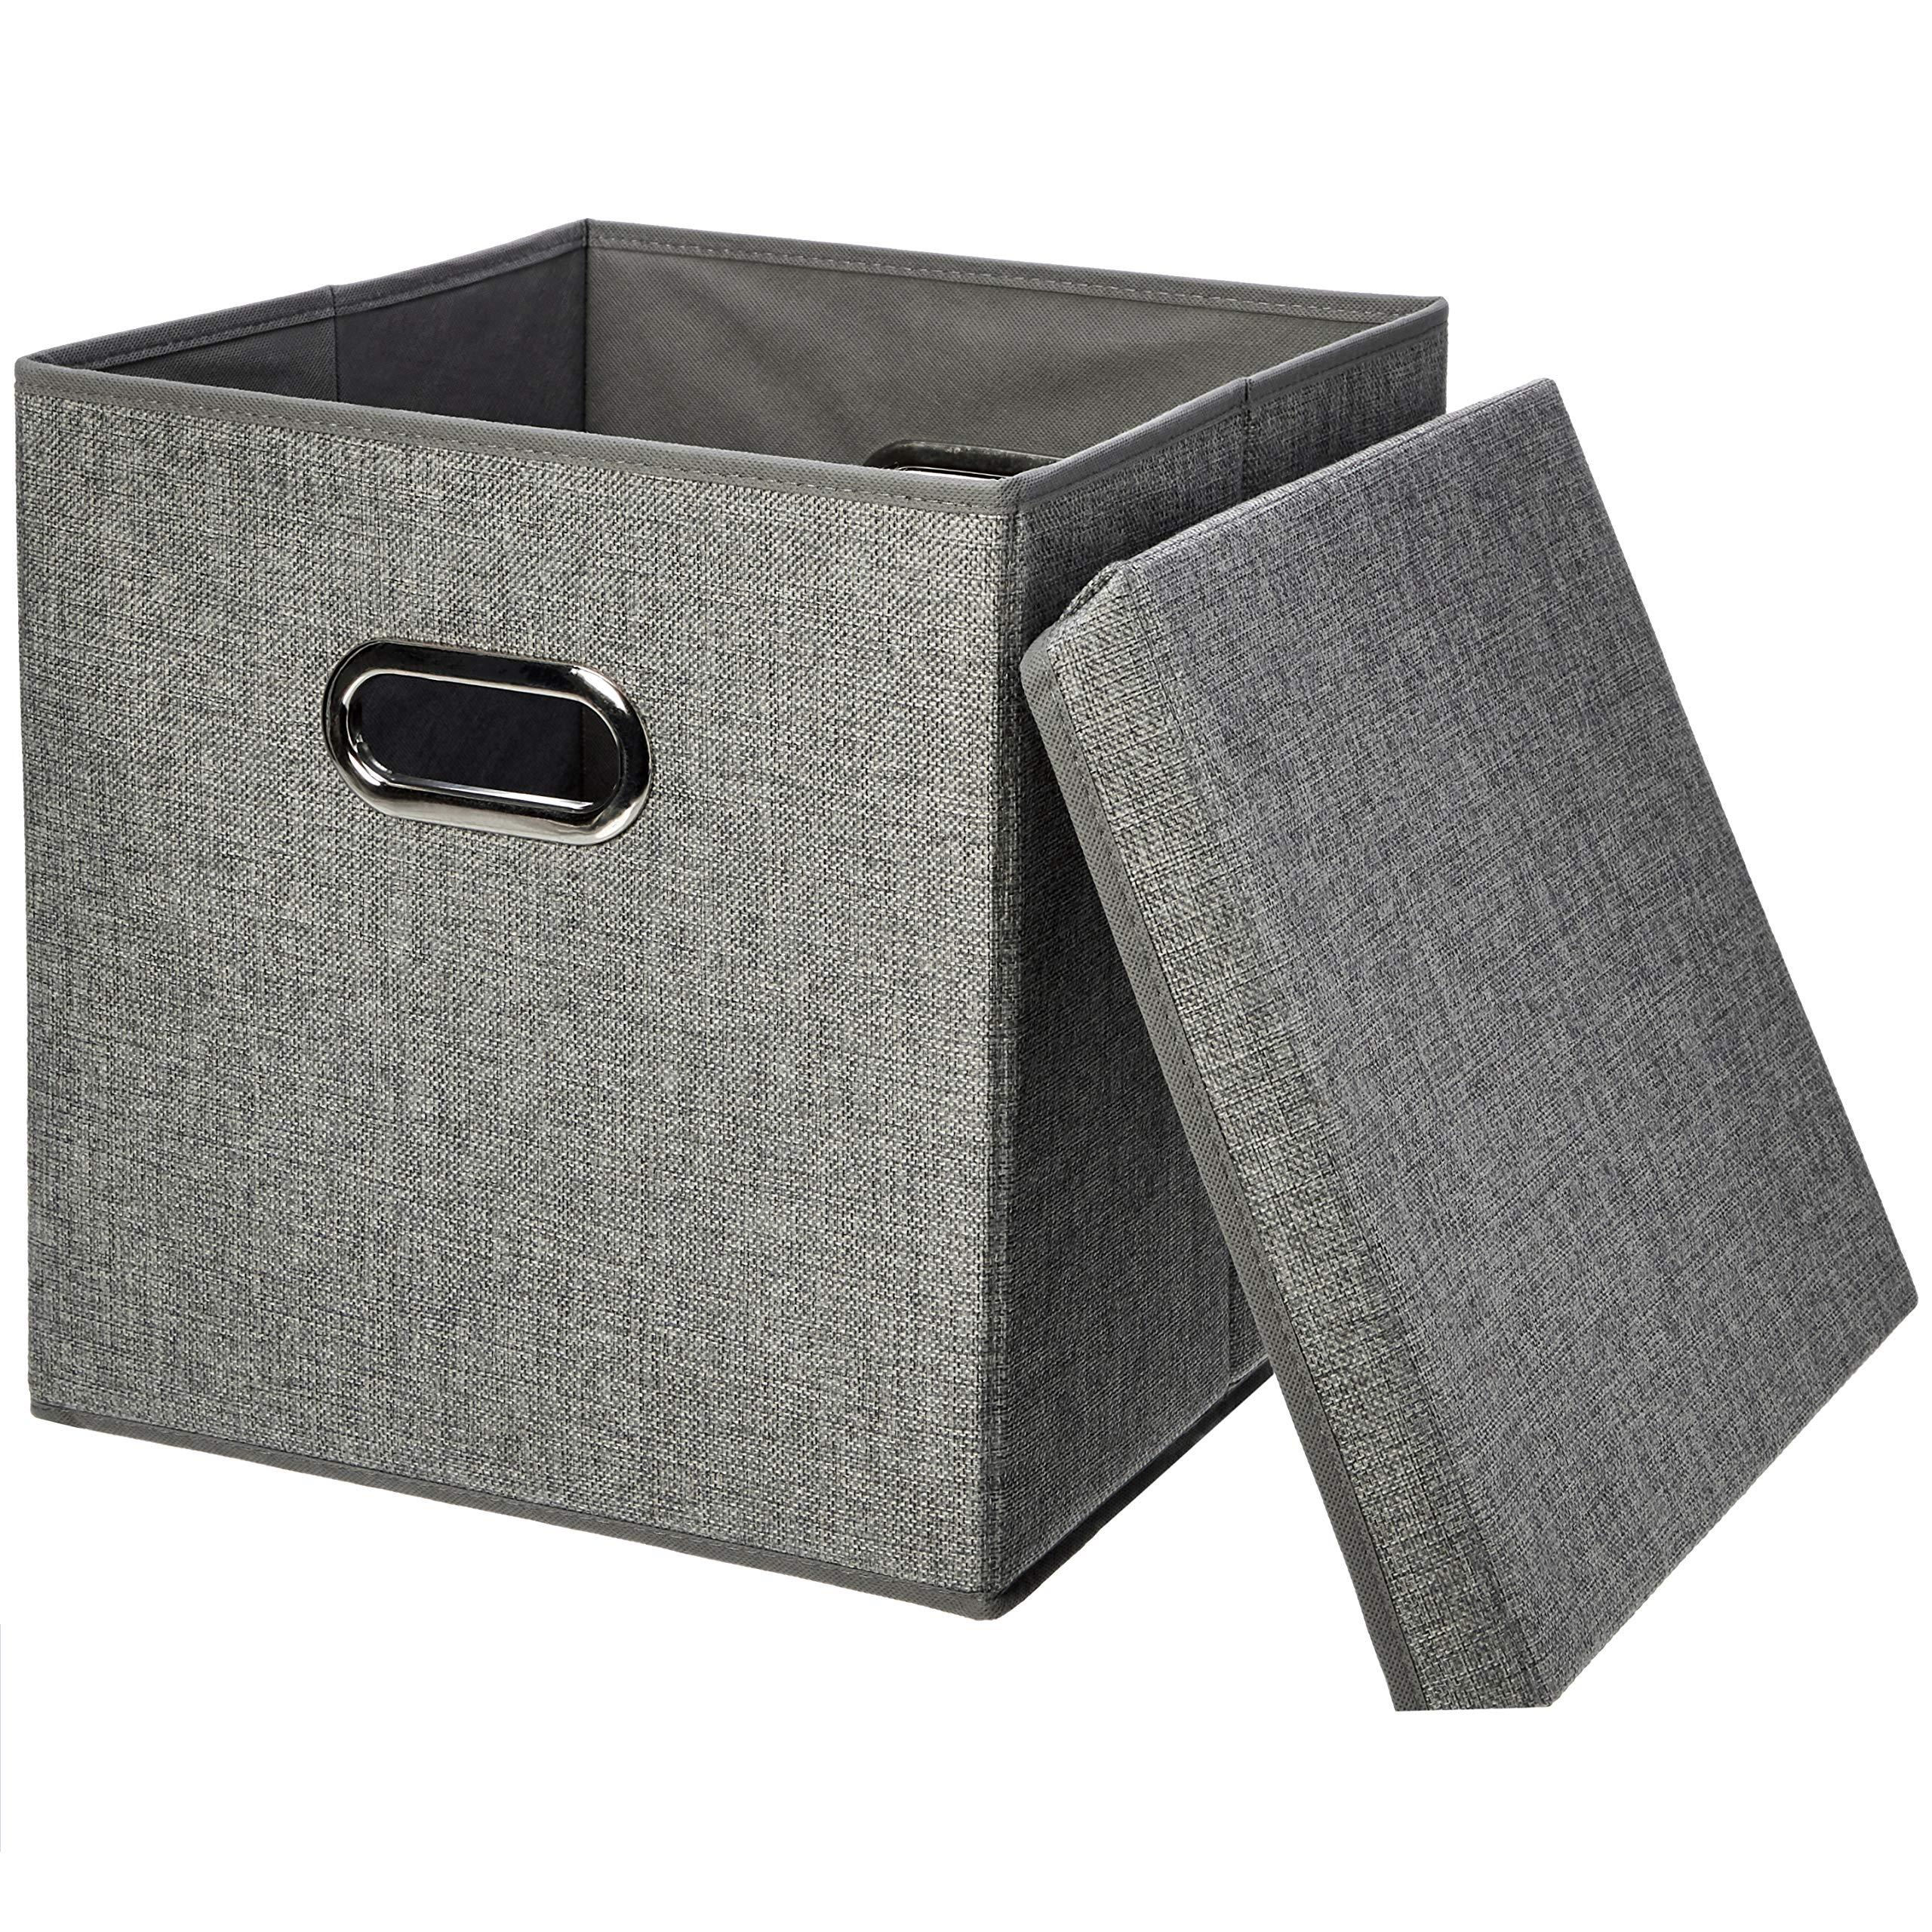 Amazon Basics Foldable Burlap Cloth Cube Storage Bin with Lid, Set of 2